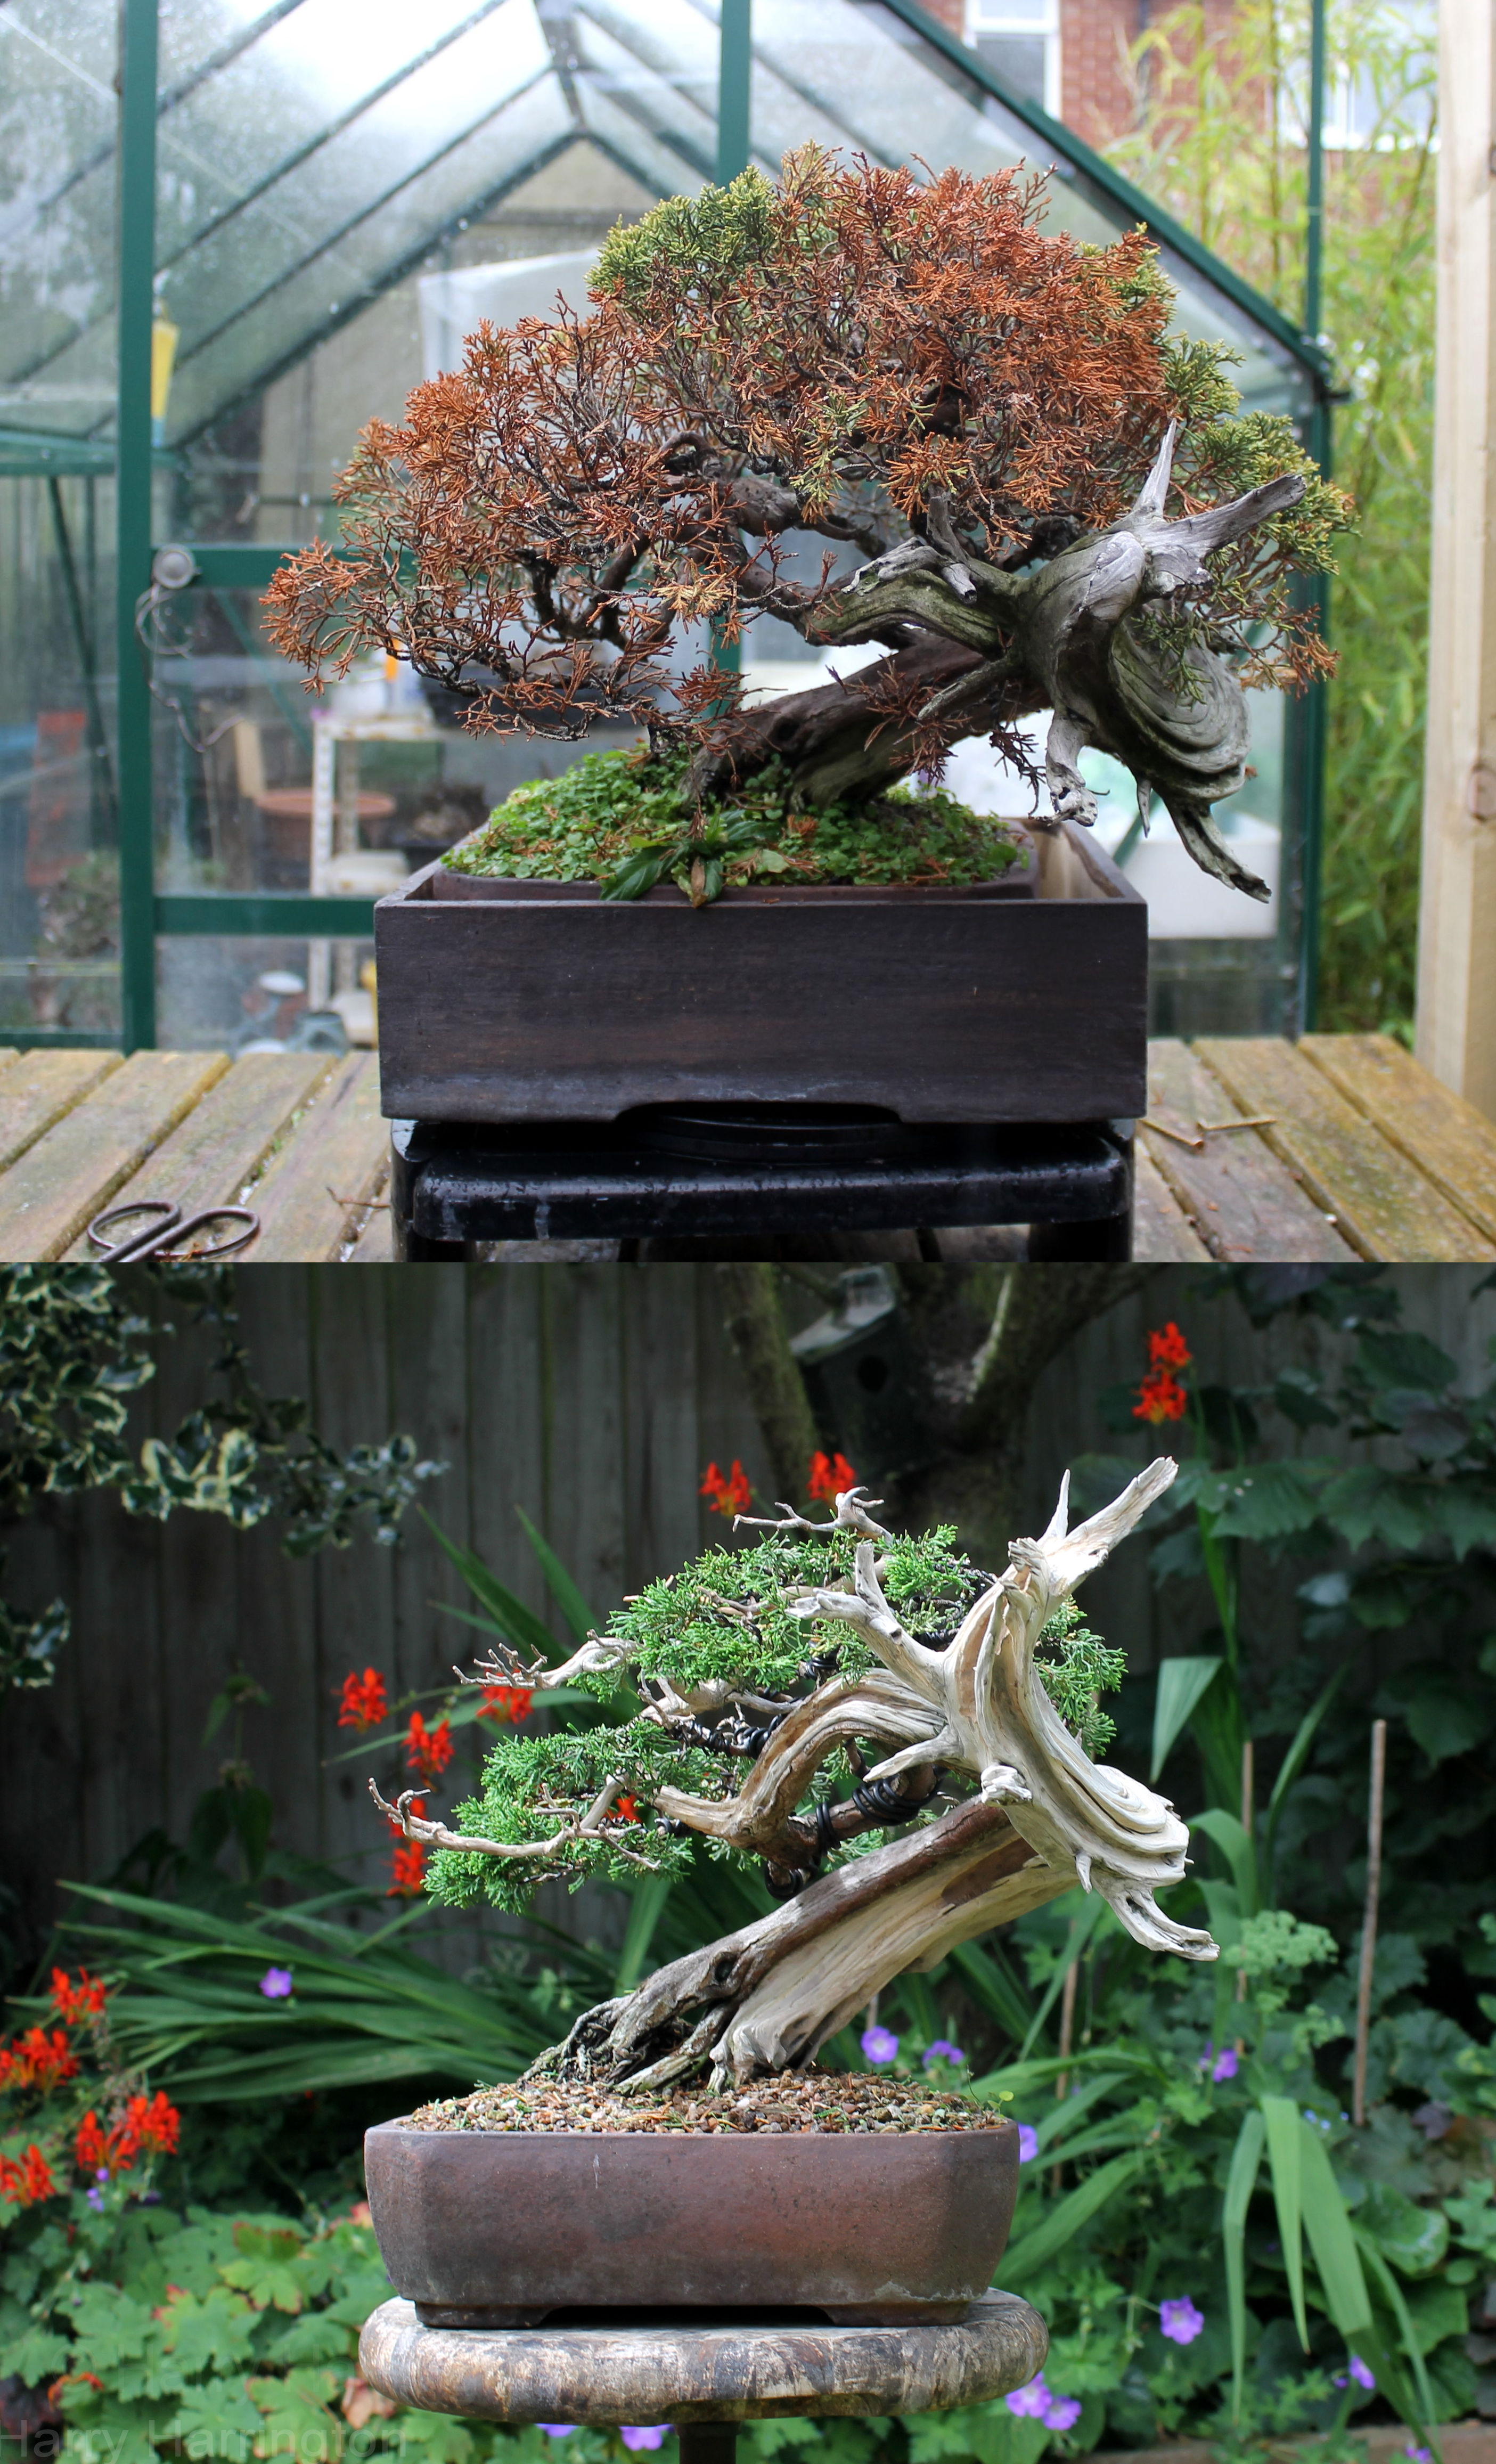 rhizotonic juniper bonsai